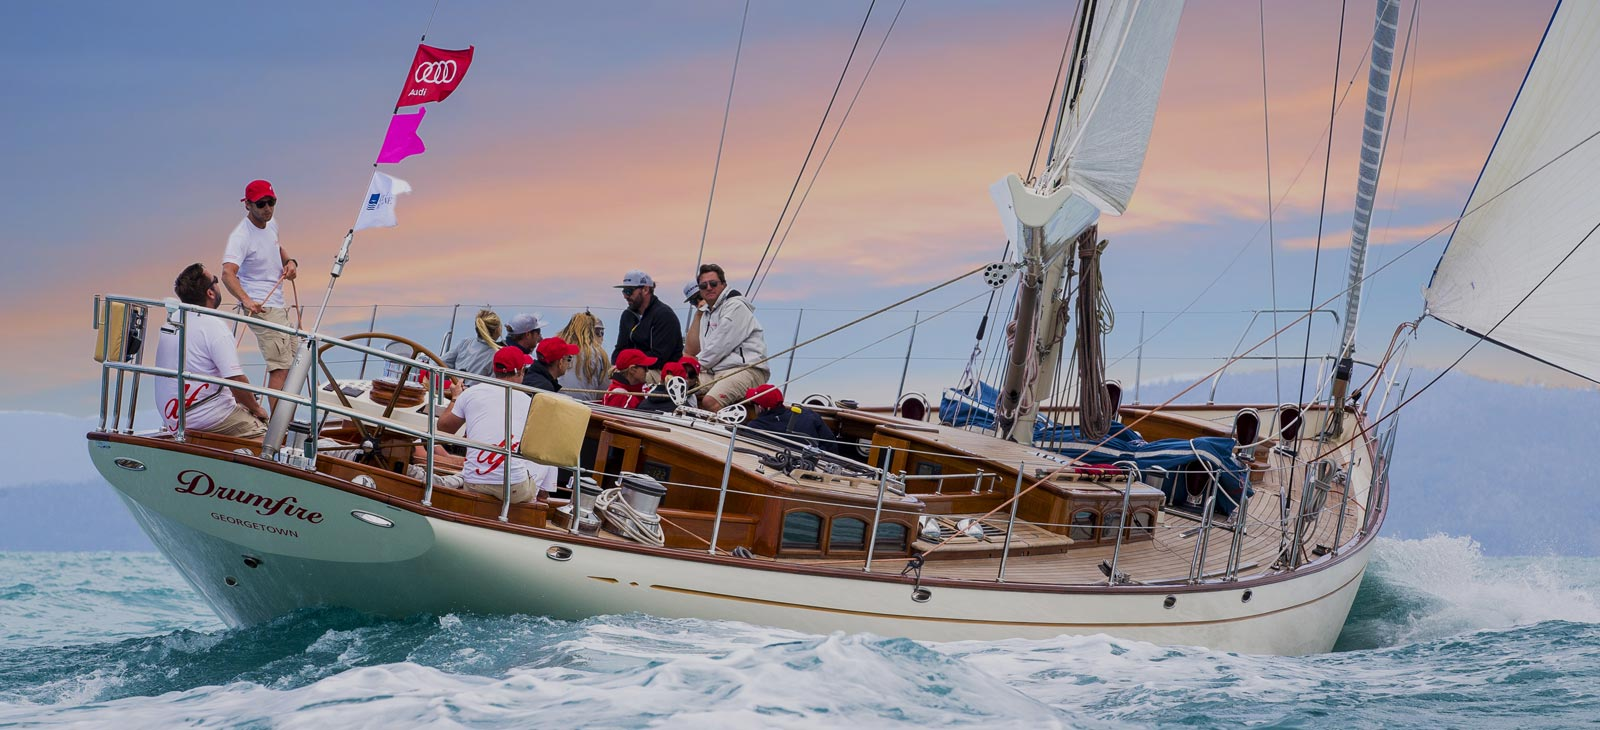 <h1>Yacht Rigging Specialists</h1><p>Got a mast or rigging probem? We will fix it!</p><p><a href='https://riggtech.com.au/contact'>CONTACT US</a></p>